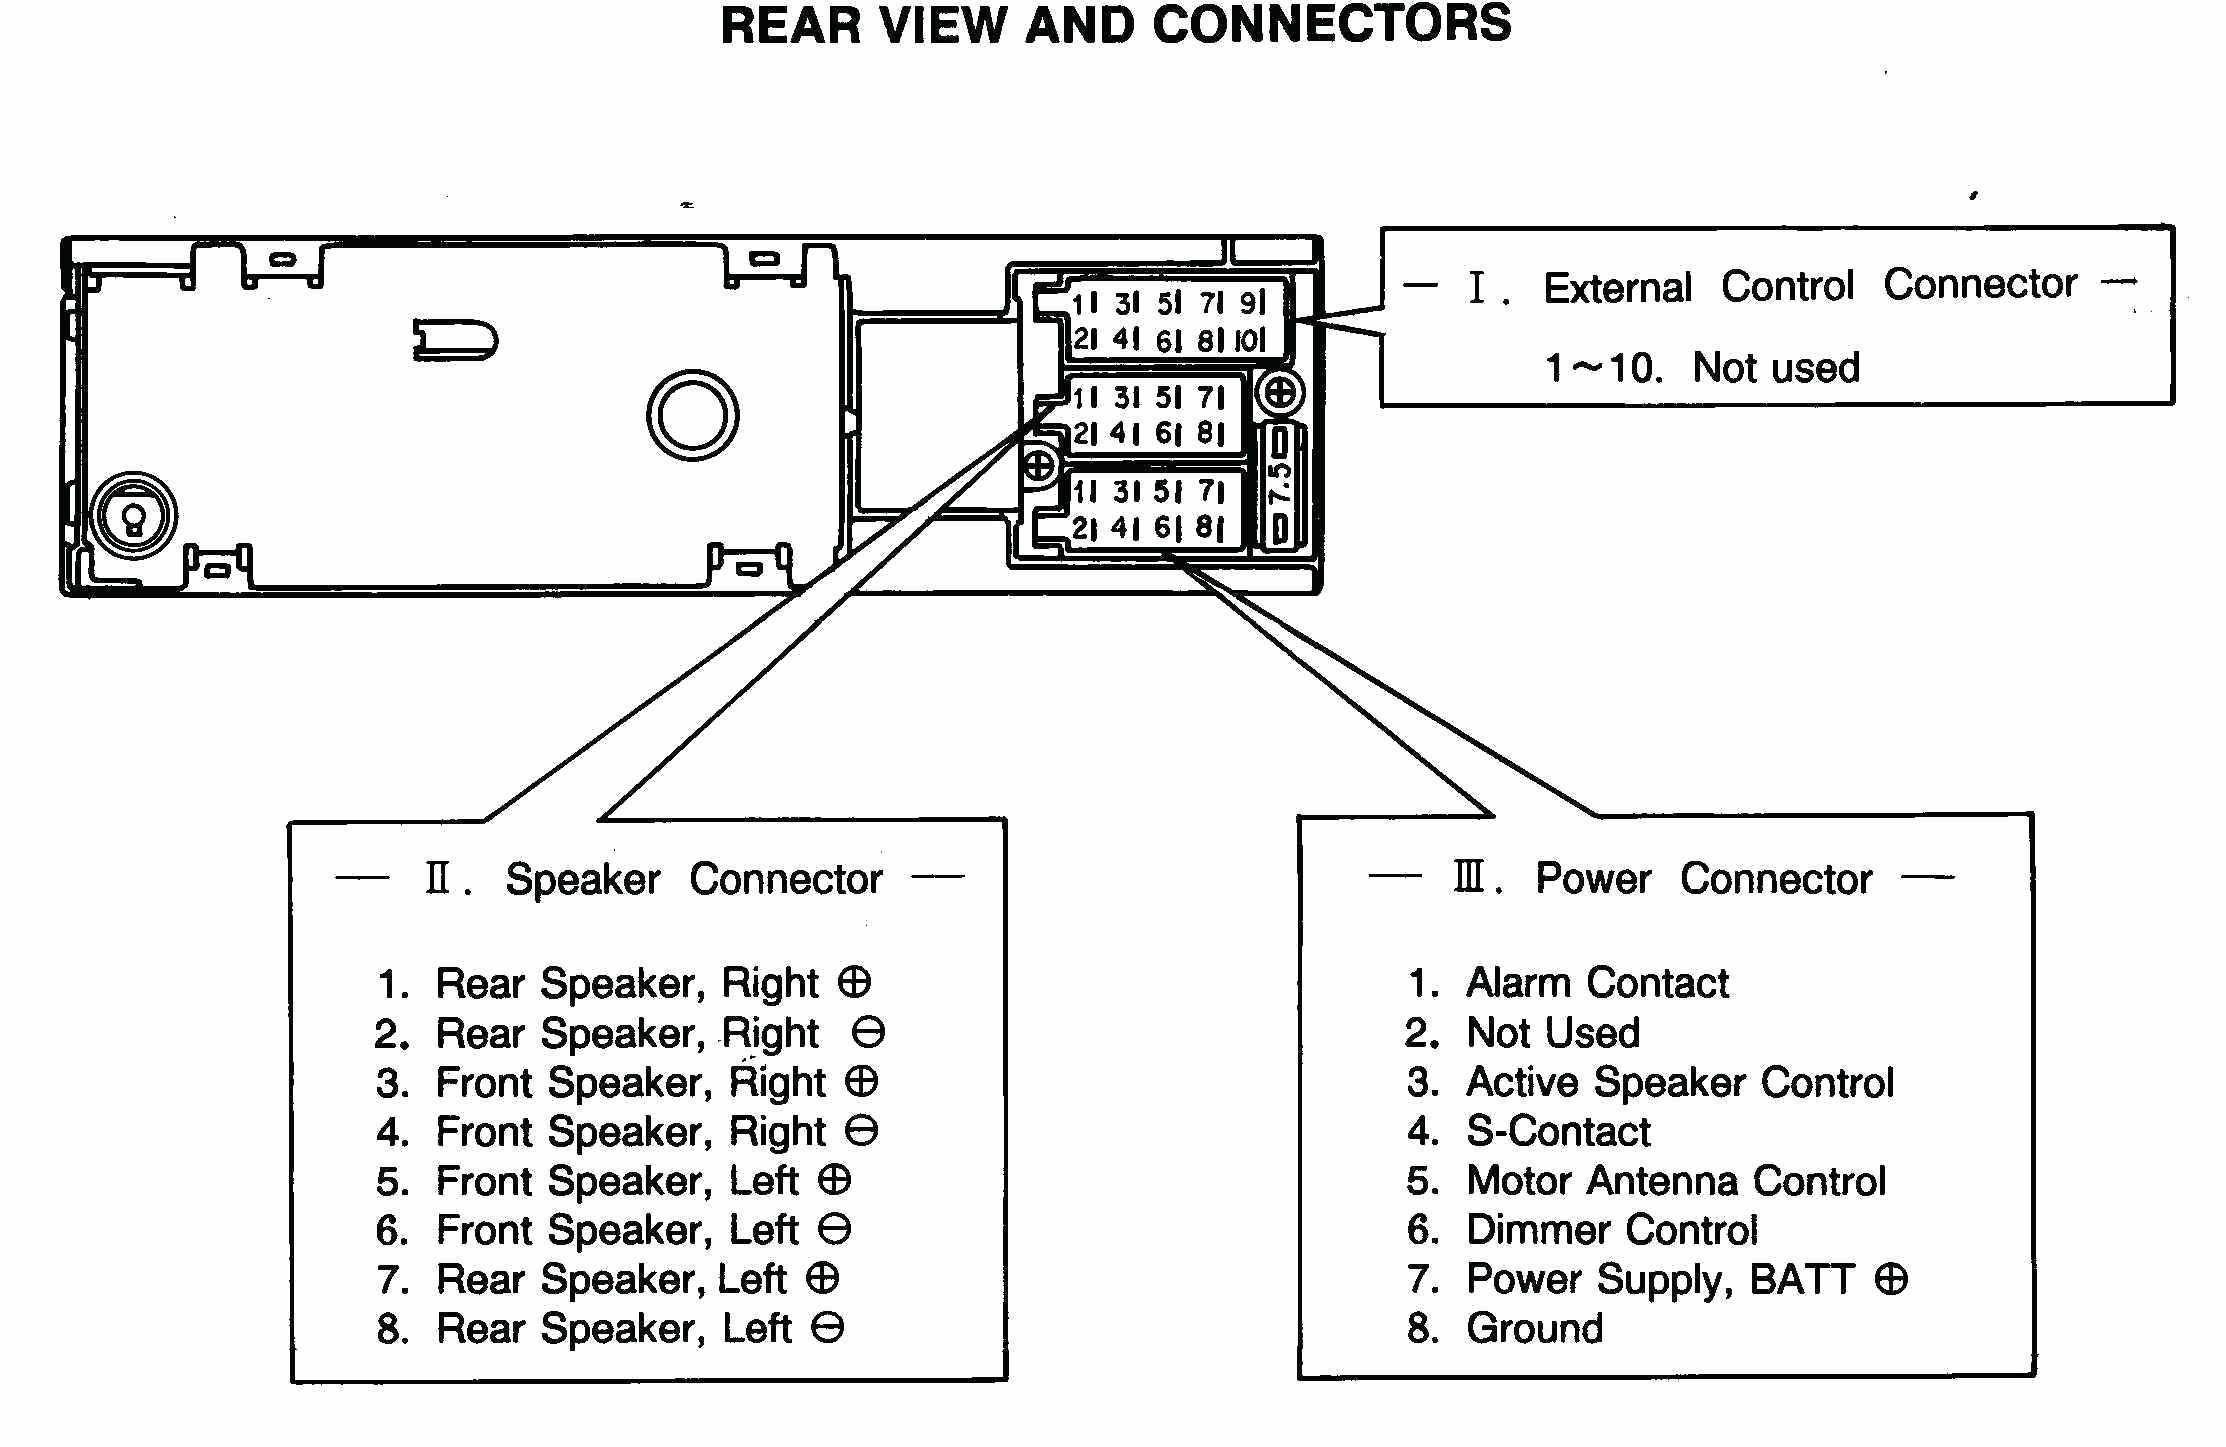 Alpine Car Stereo Wiring Diagram Awesome Alpine Car Stereo Wiring Gallery Everything You Need to Of Alpine Car Stereo Wiring Diagram